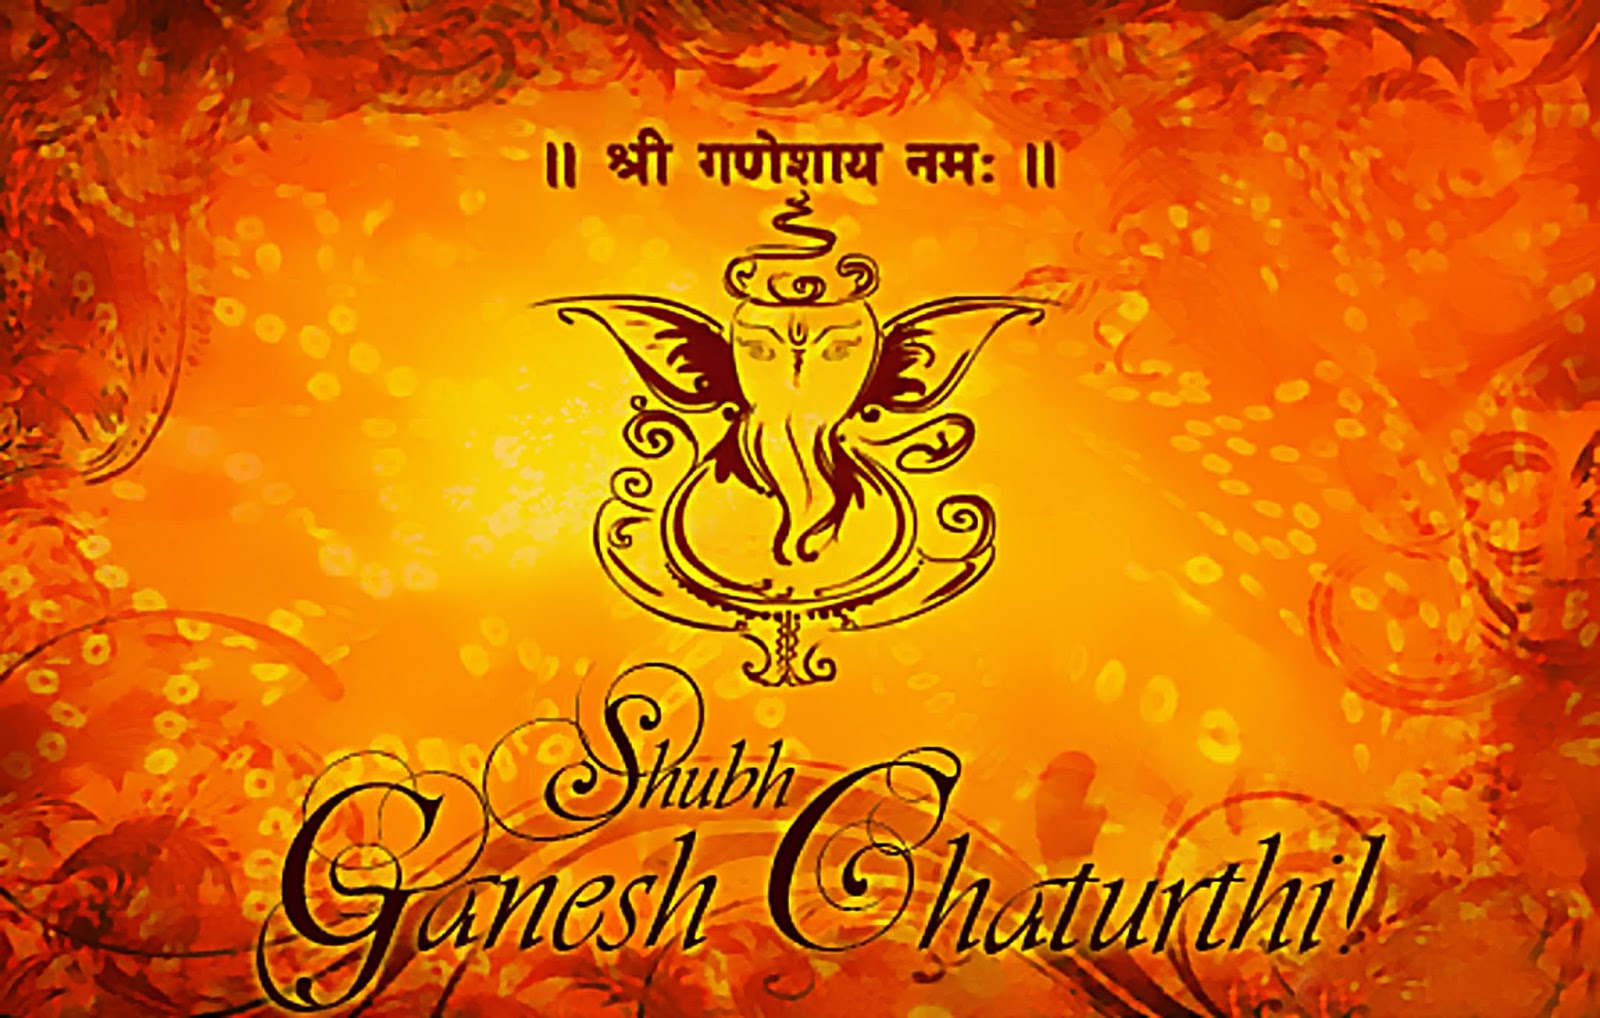 Happy Ganesh Chaturthi Whatsapp Status & Messages